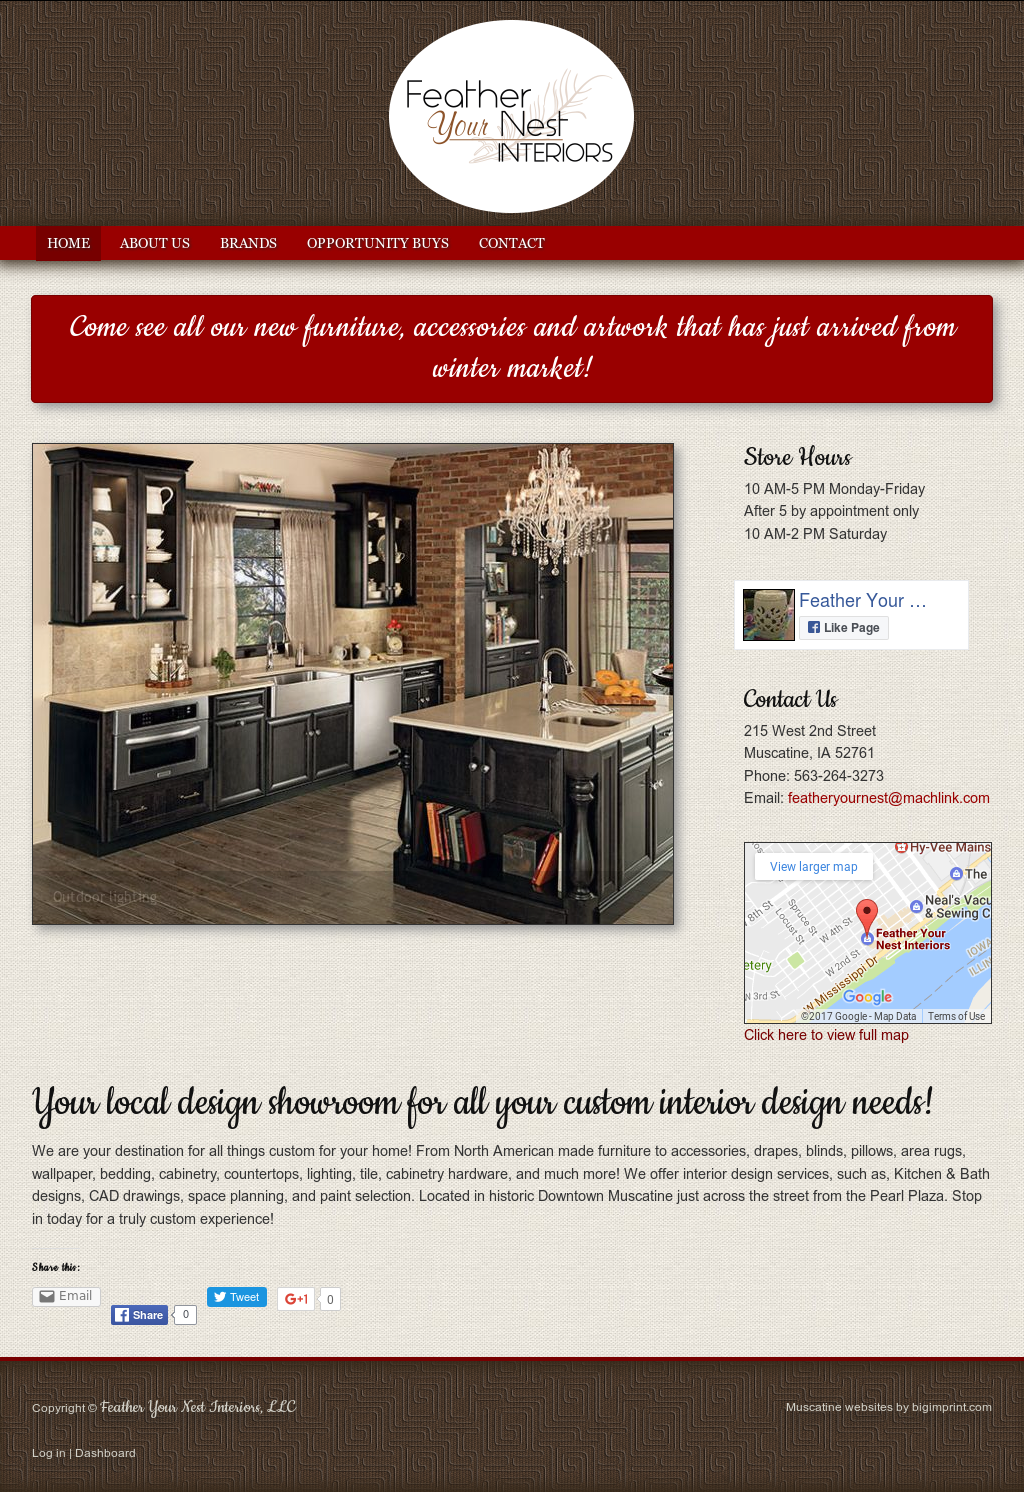 Feather Your Nest Interiors Website History